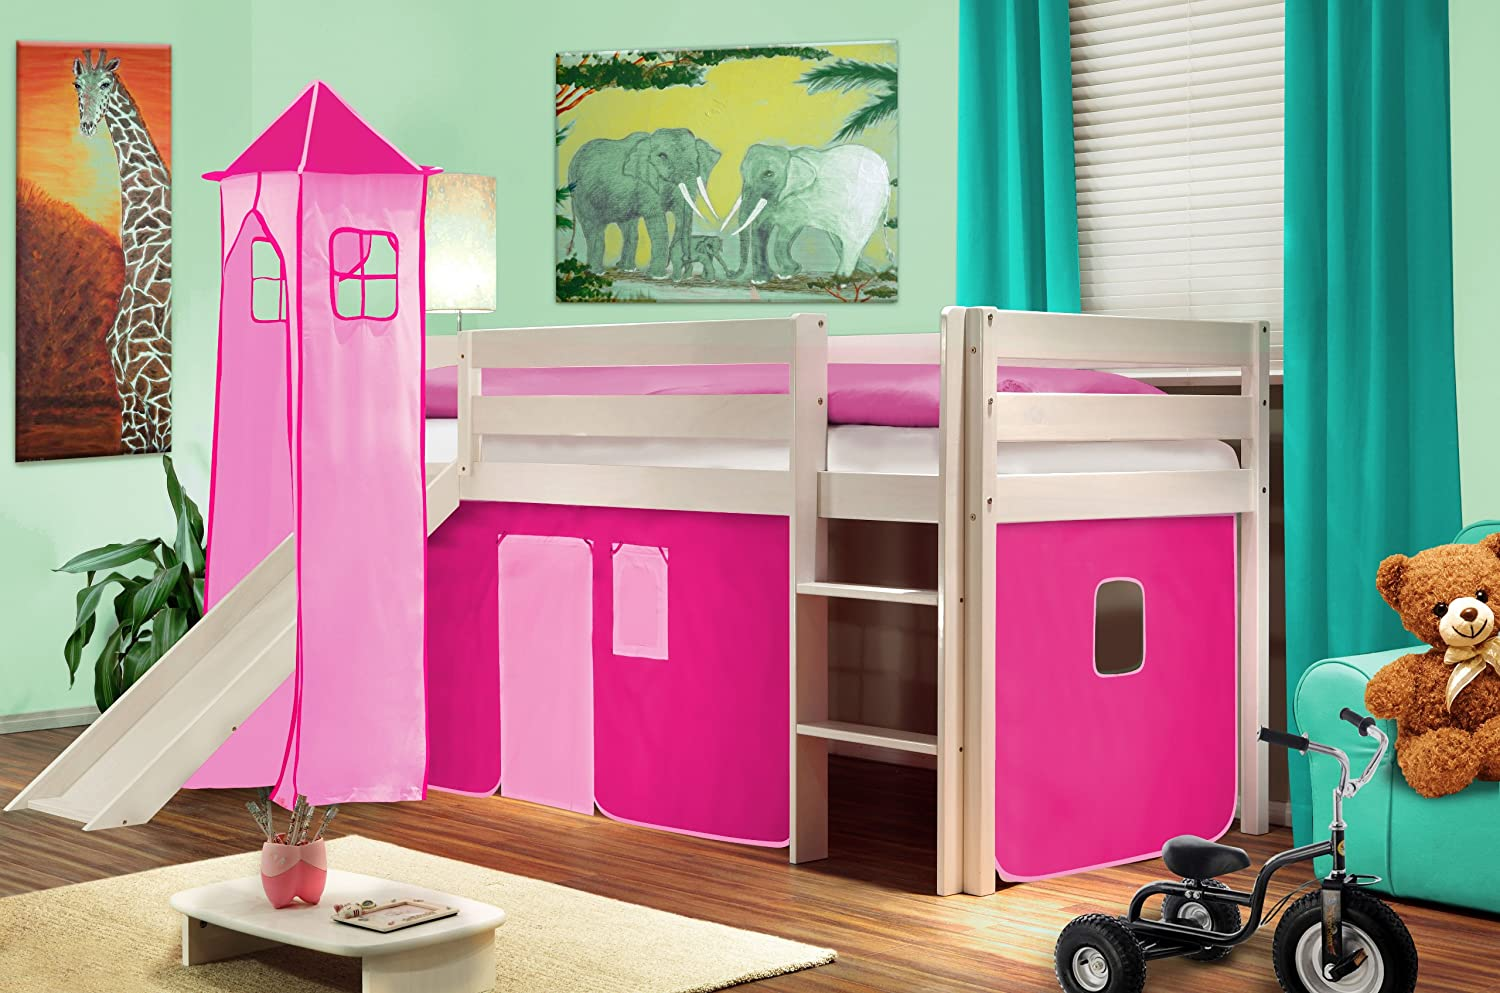 rezension hochbett kinderbett spielbett mit turm und rutsche massiv kiefer wei pink sehr. Black Bedroom Furniture Sets. Home Design Ideas